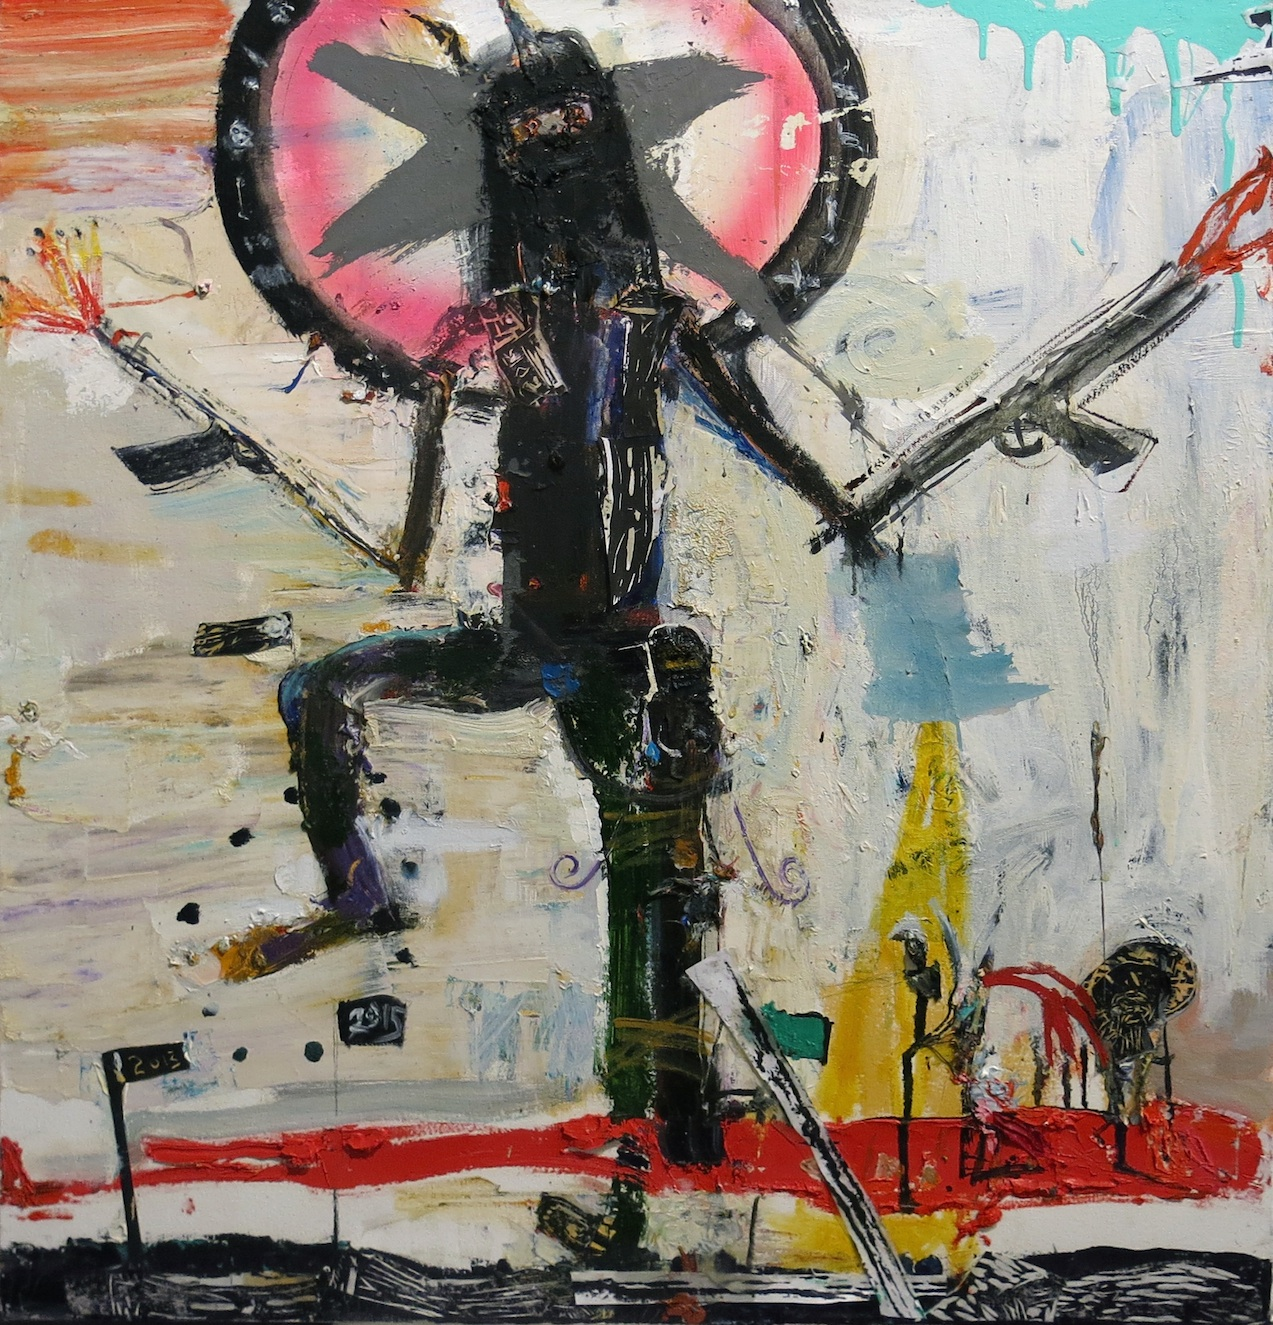 Matt Blackwell, Barbarian, 2015, oil and collage on canvas, 28h x 26w in.